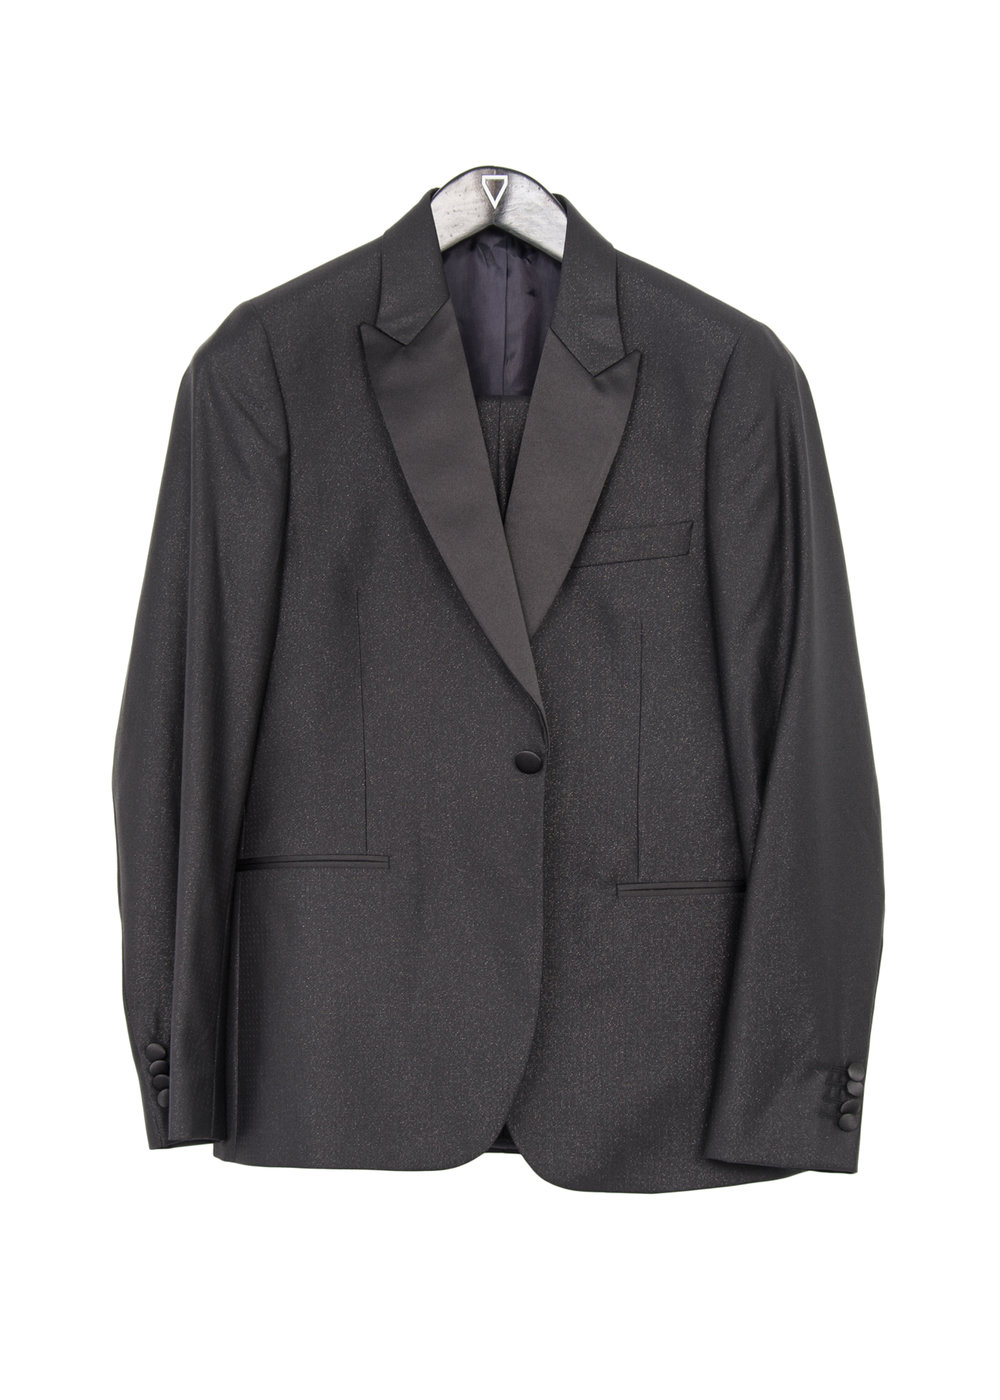 "44 PAUL SMITH TUXEDO ""PAUL-TUX01-44"""